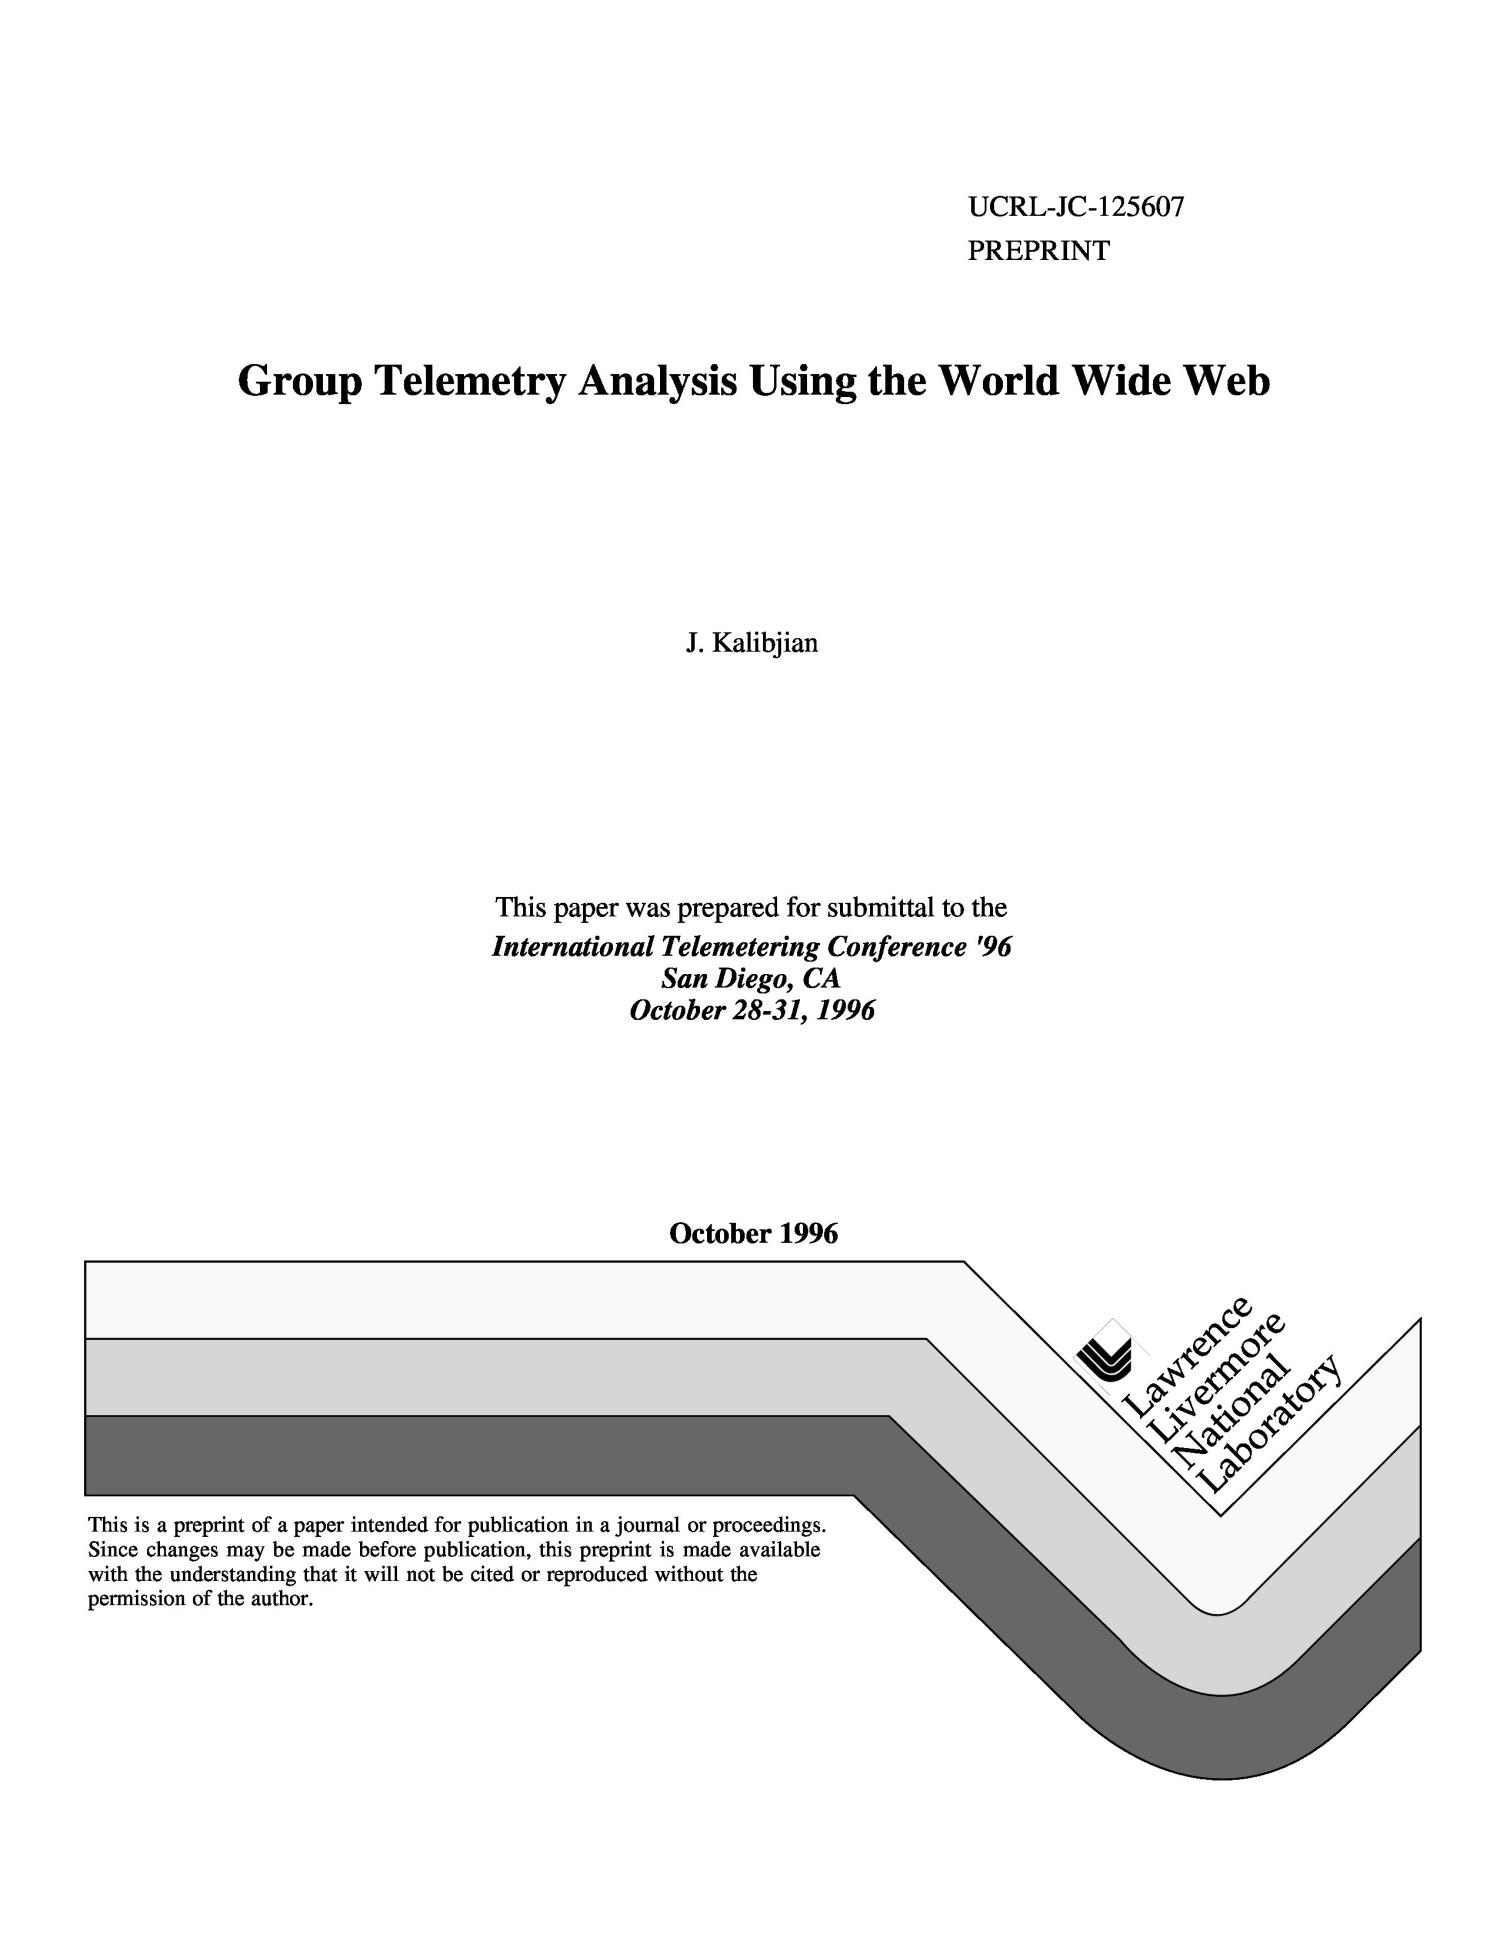 Group telemetry analysis using the World Wide Web                                                                                                      [Sequence #]: 1 of 9